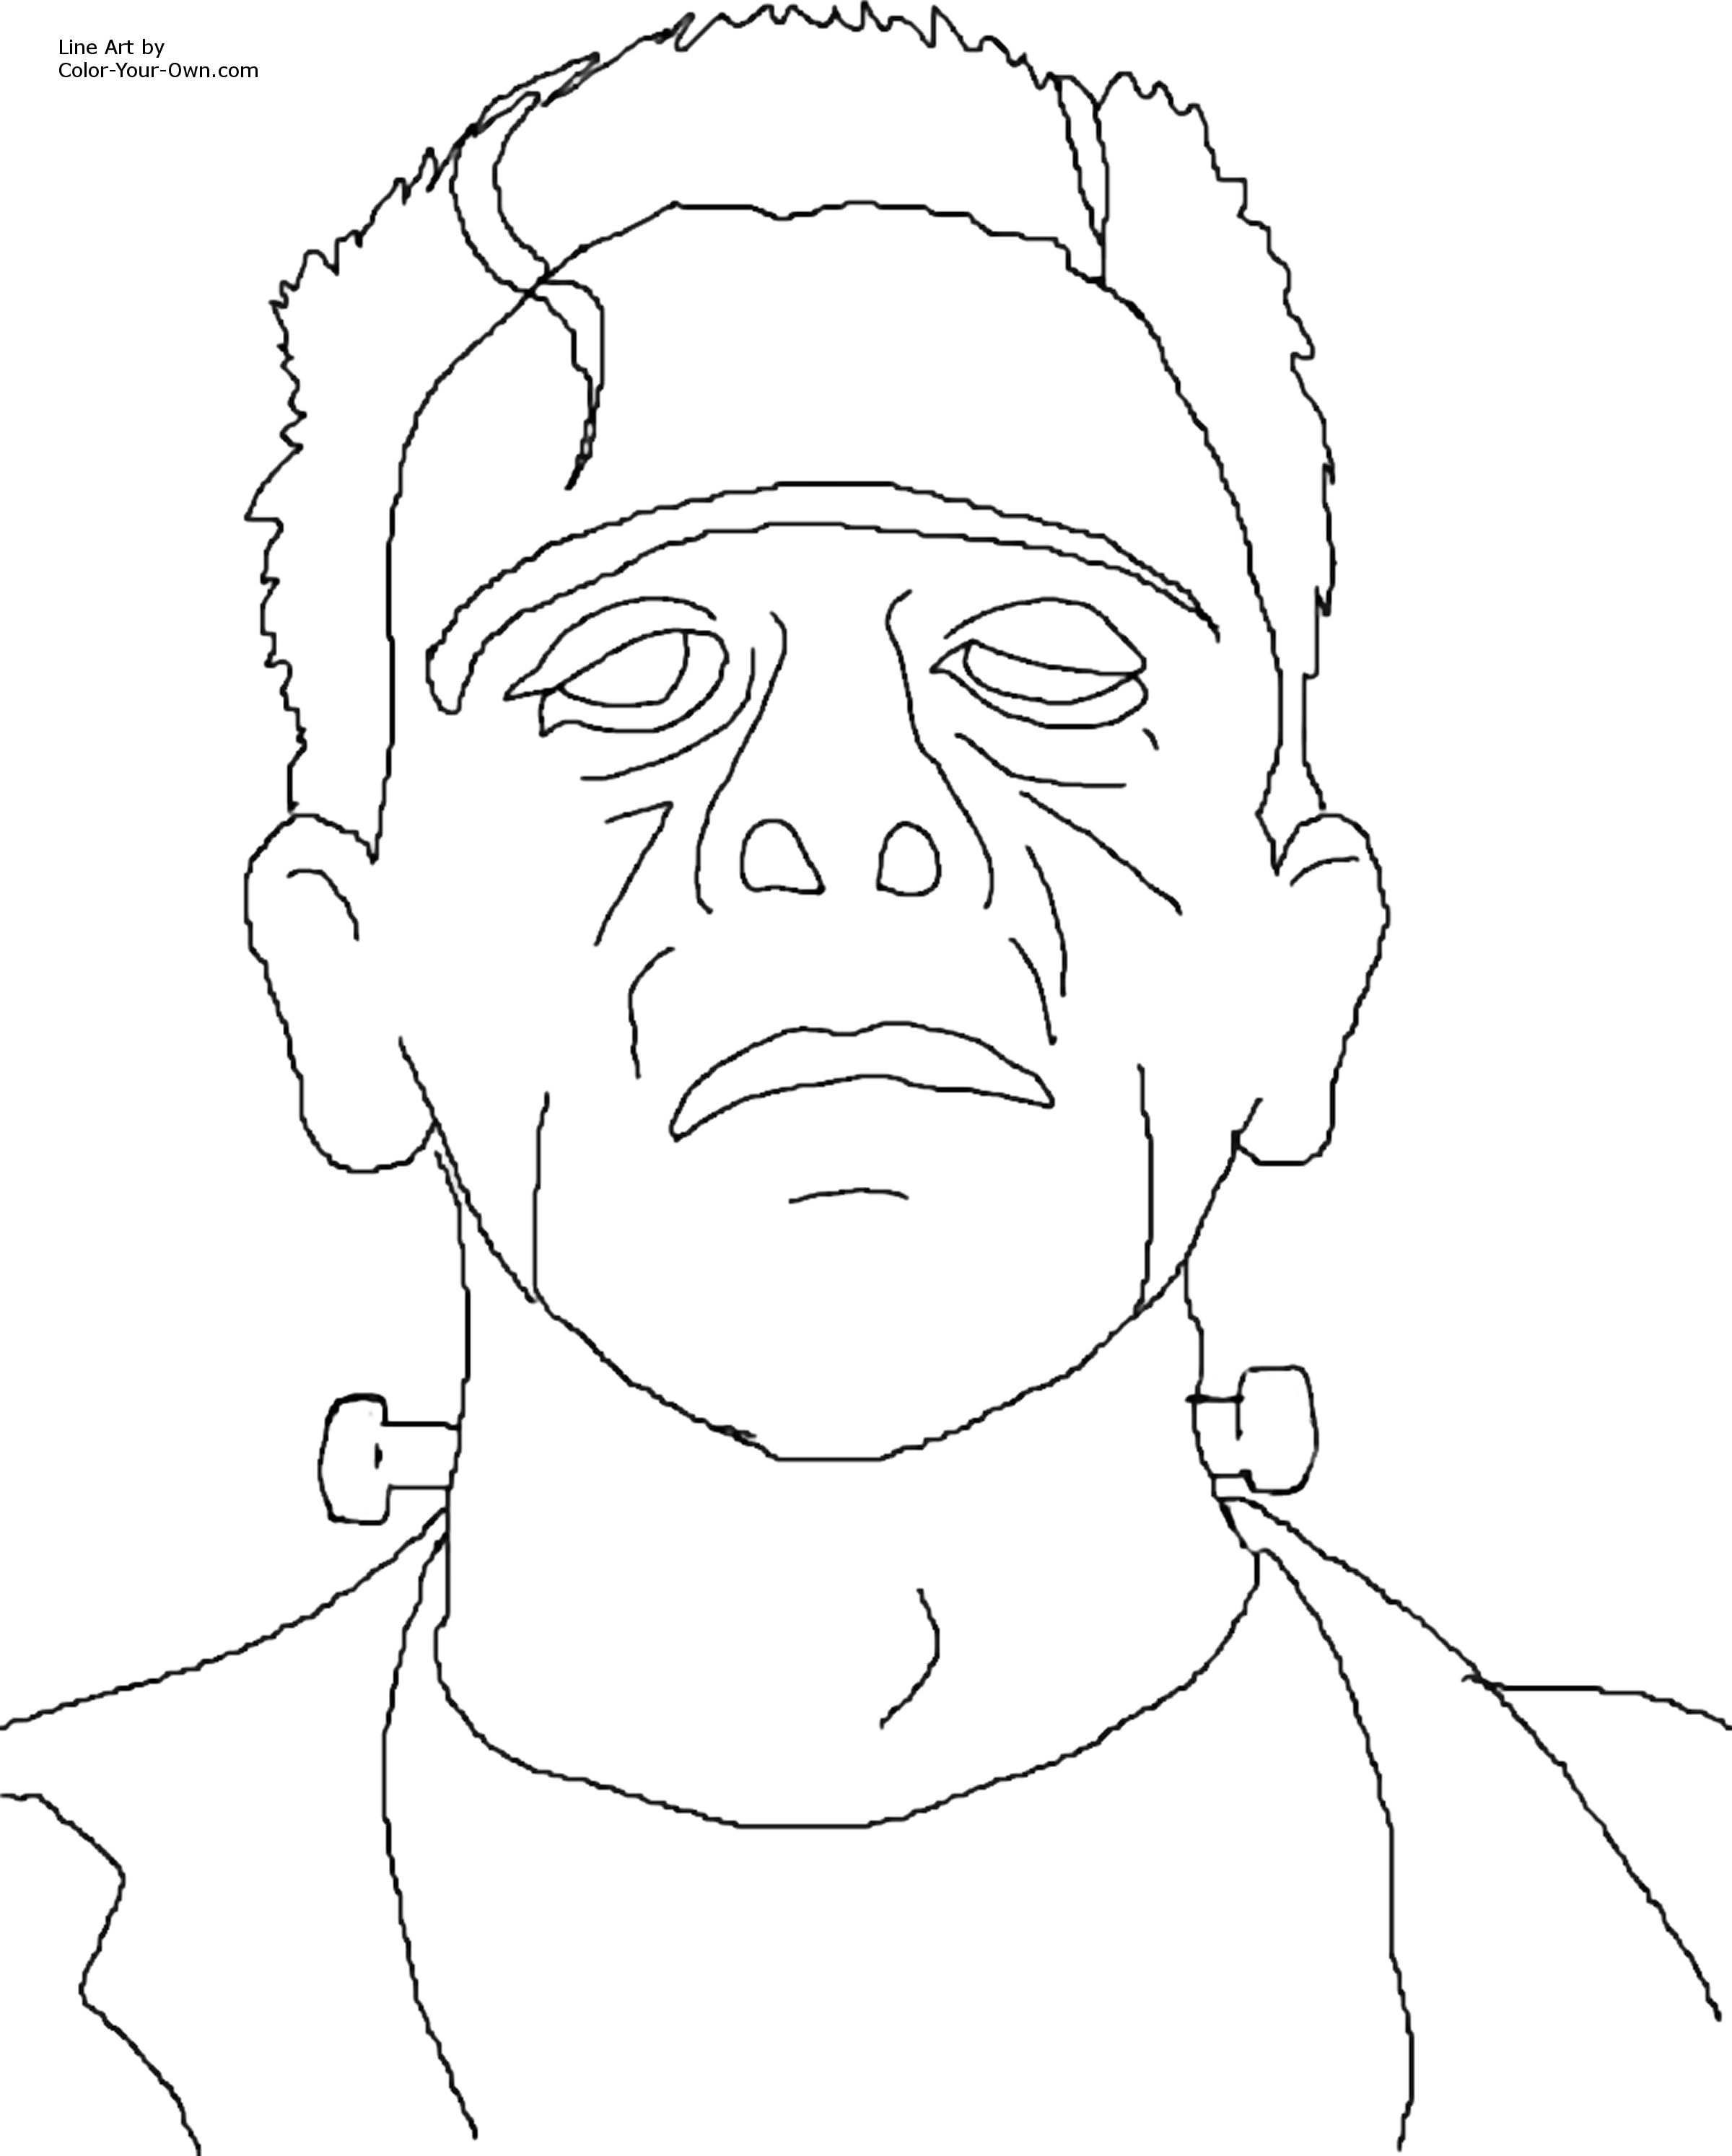 Frankenstein Coloring Pages Simple Classic Monster Movie  Frankenstein Coloring Page Decorating Design